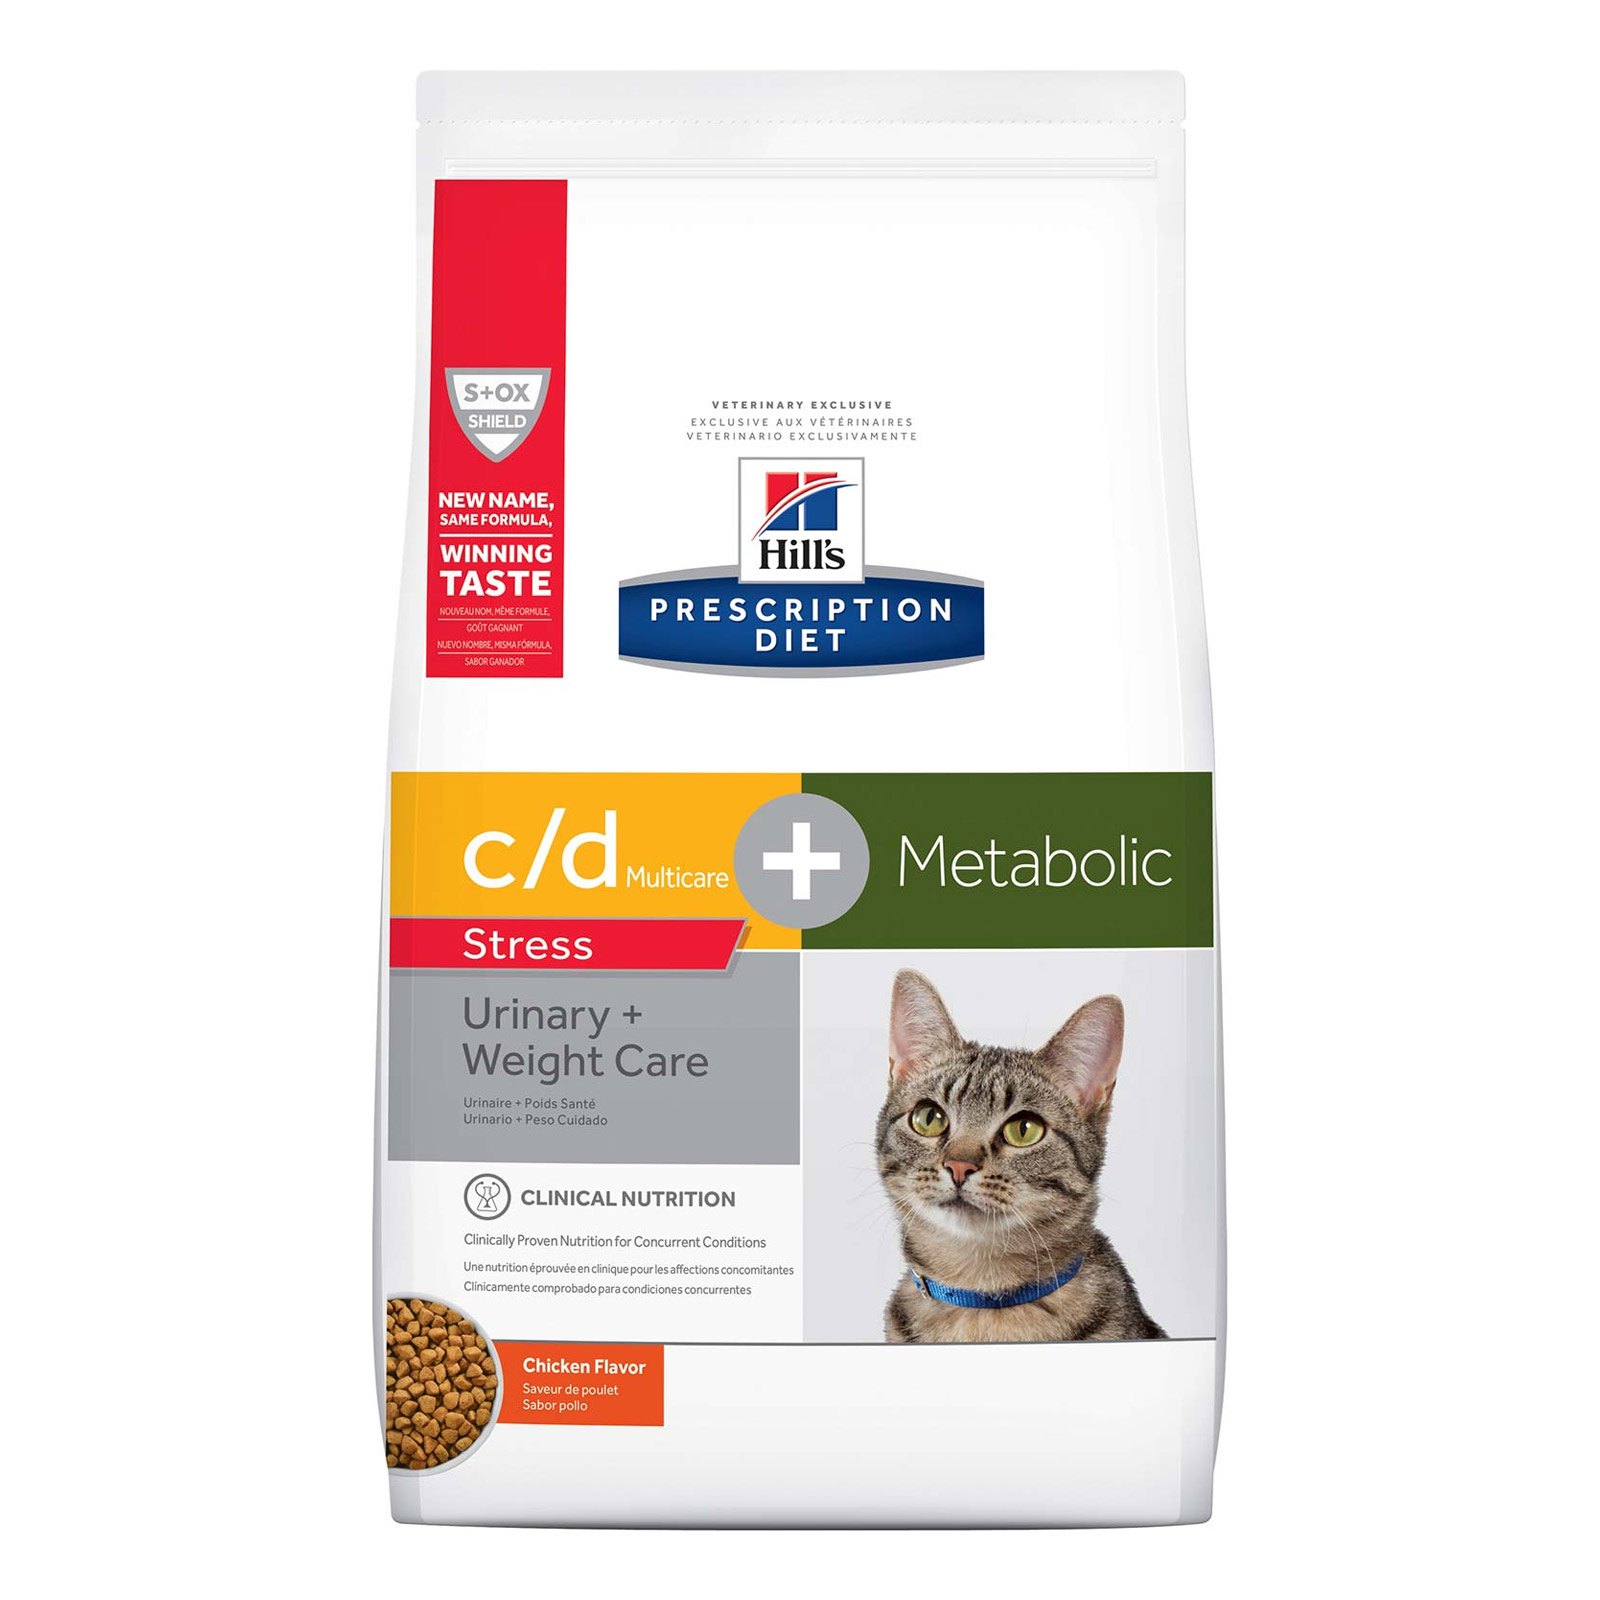 Hill's Prescription Diet Metabolic + Urinary Stress (Weight and Urinary Care) Dry Cat Food